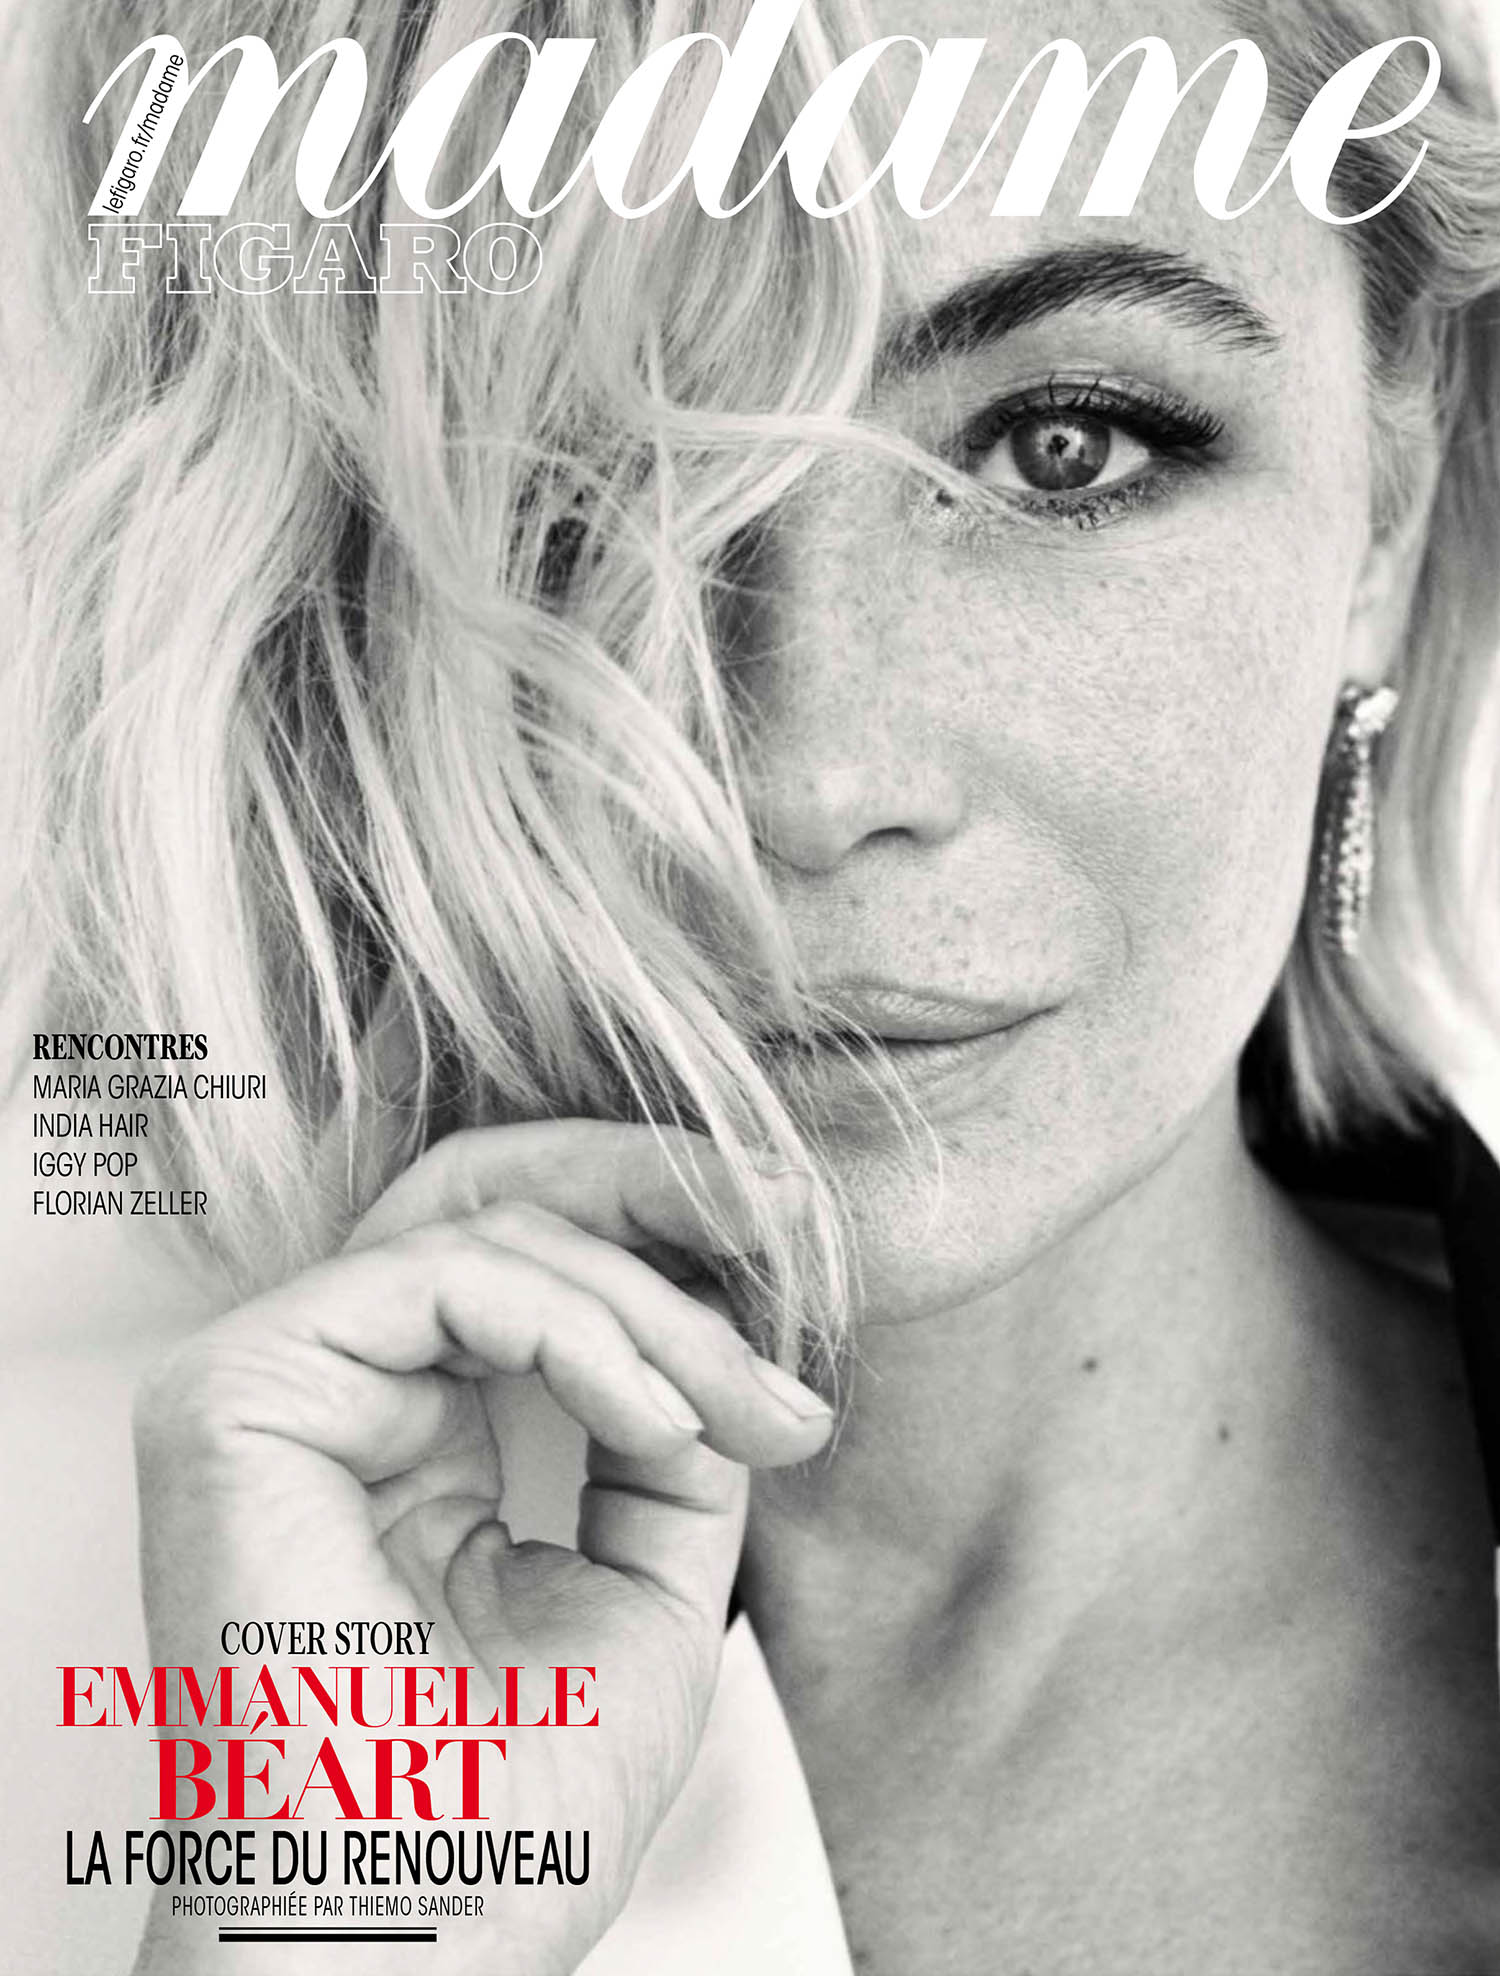 Emmanuelle Béart covers Madame Figaro May 21st, 2021 by Thiemo Sander